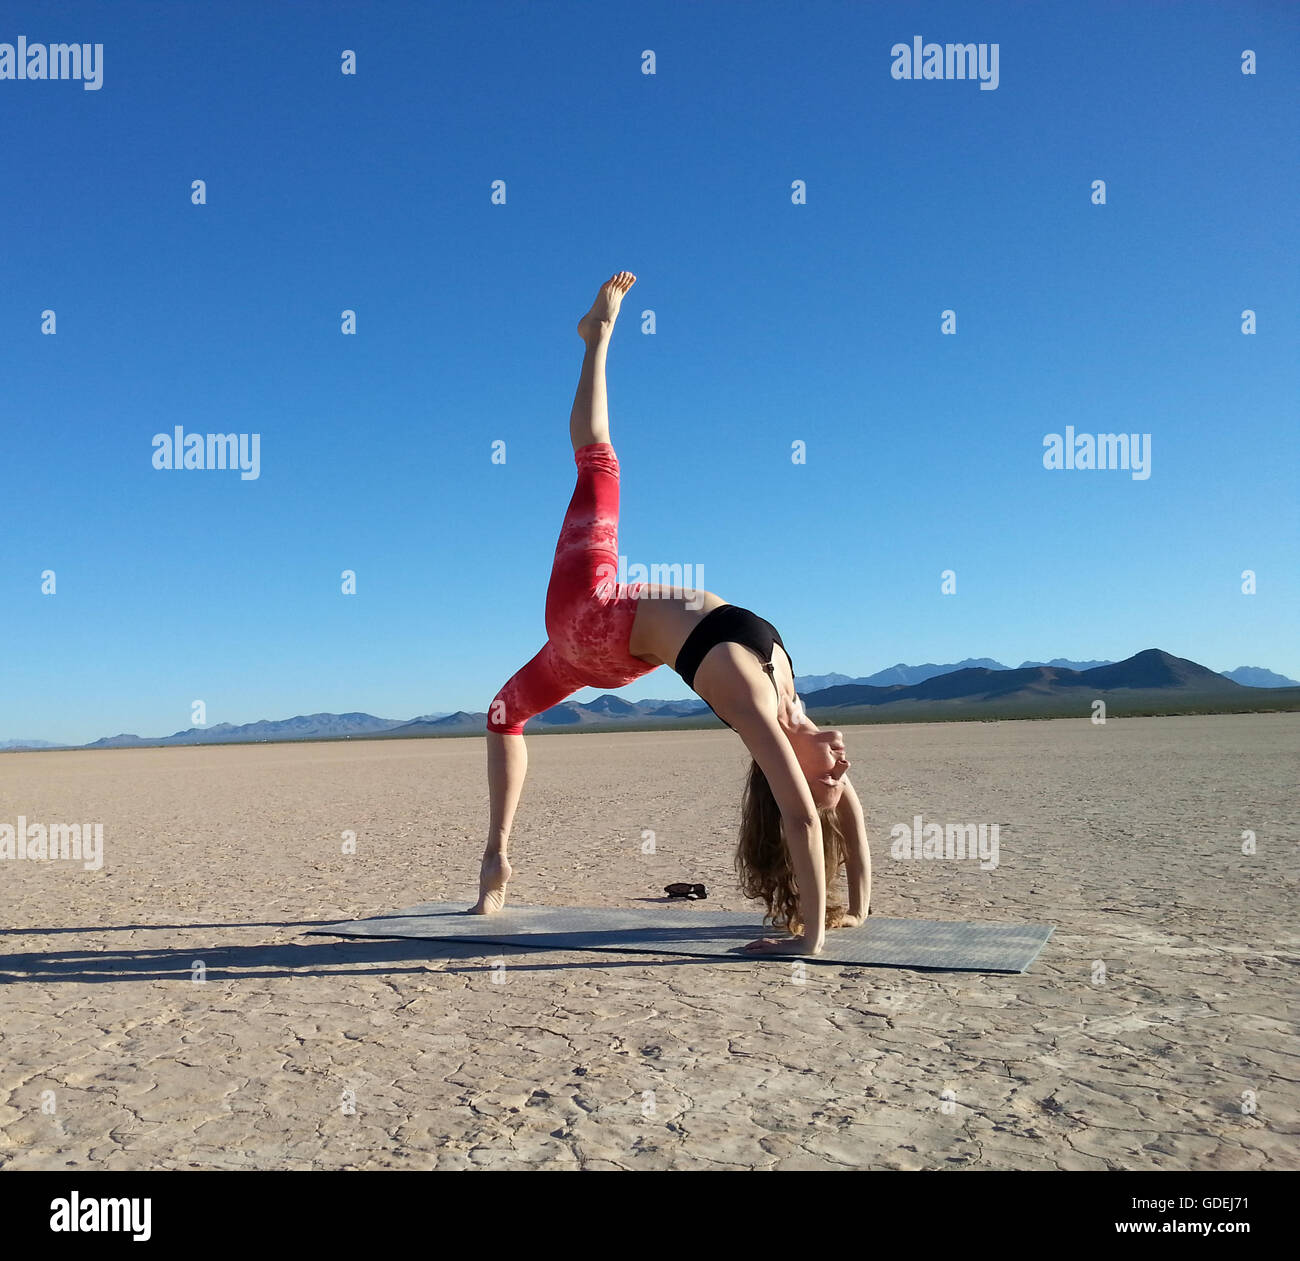 Woman doing a one legged wheel pose in a dry lake, Nevada, America, USA - Stock Image